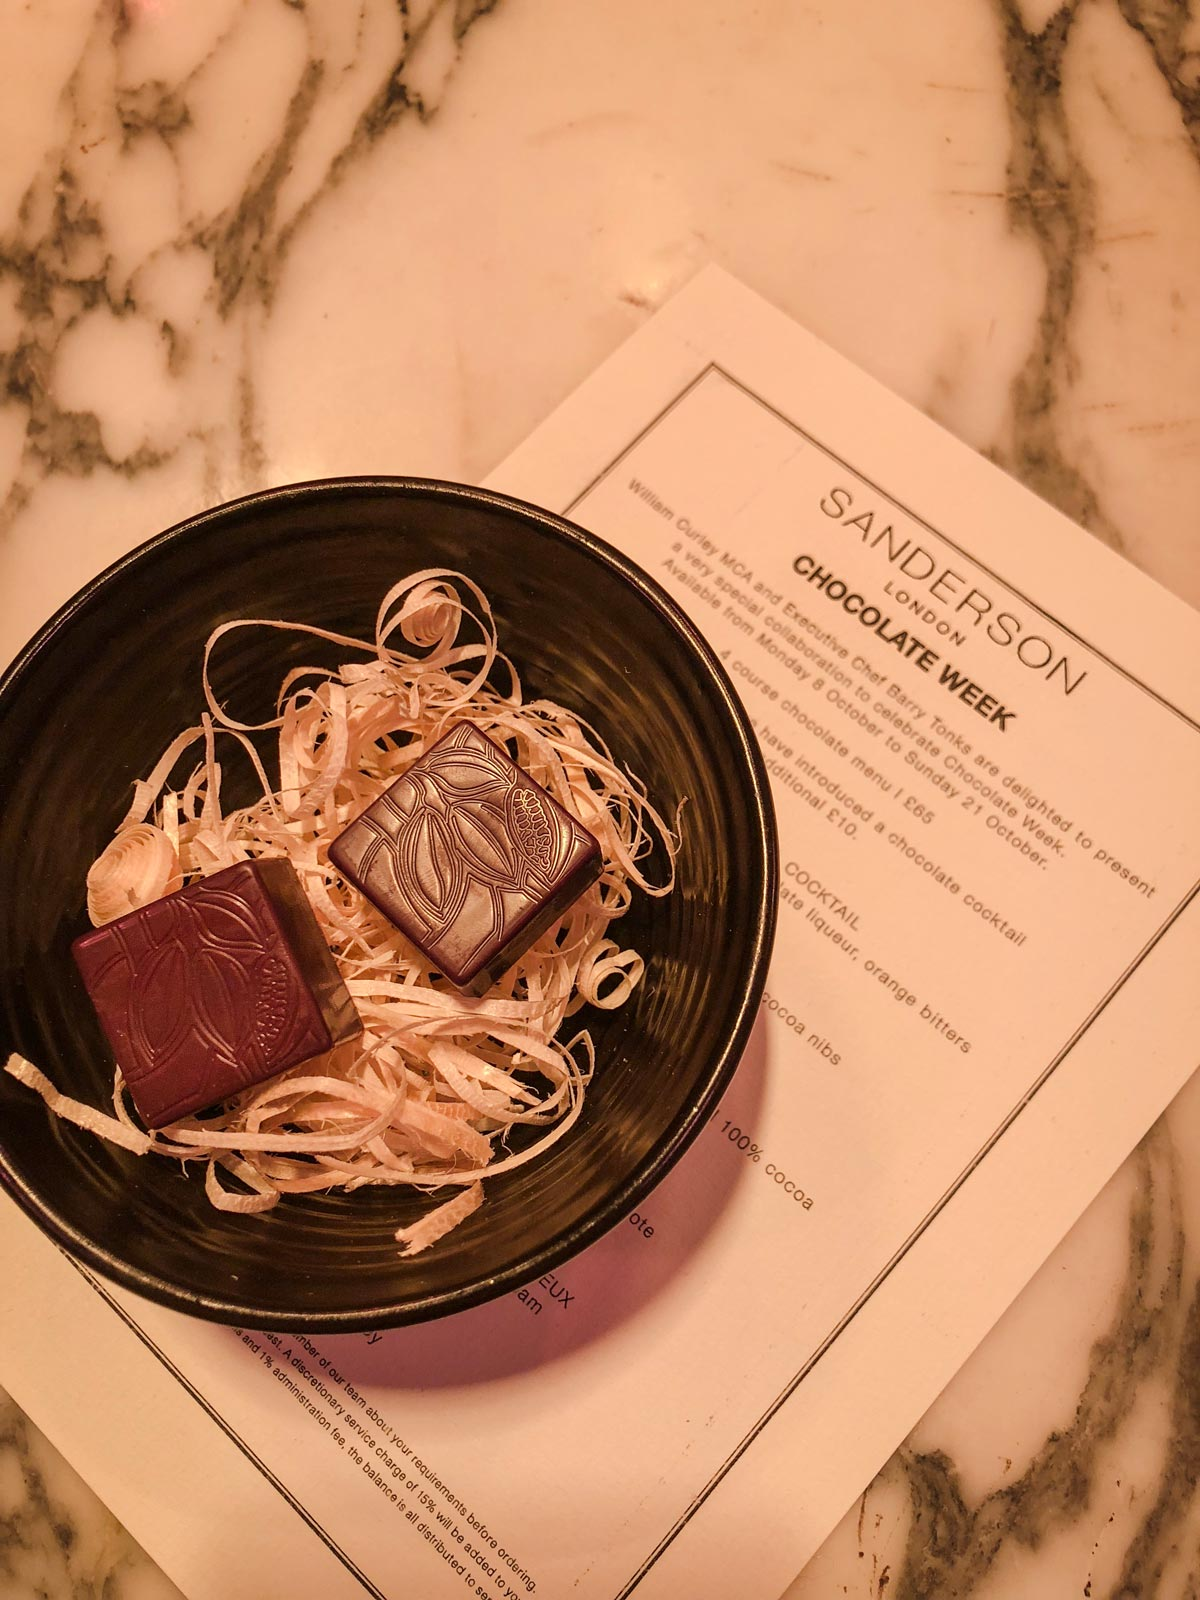 National Chocolate Week - The Restaurant at Sanderson Hotel - Chocolates by William Curley